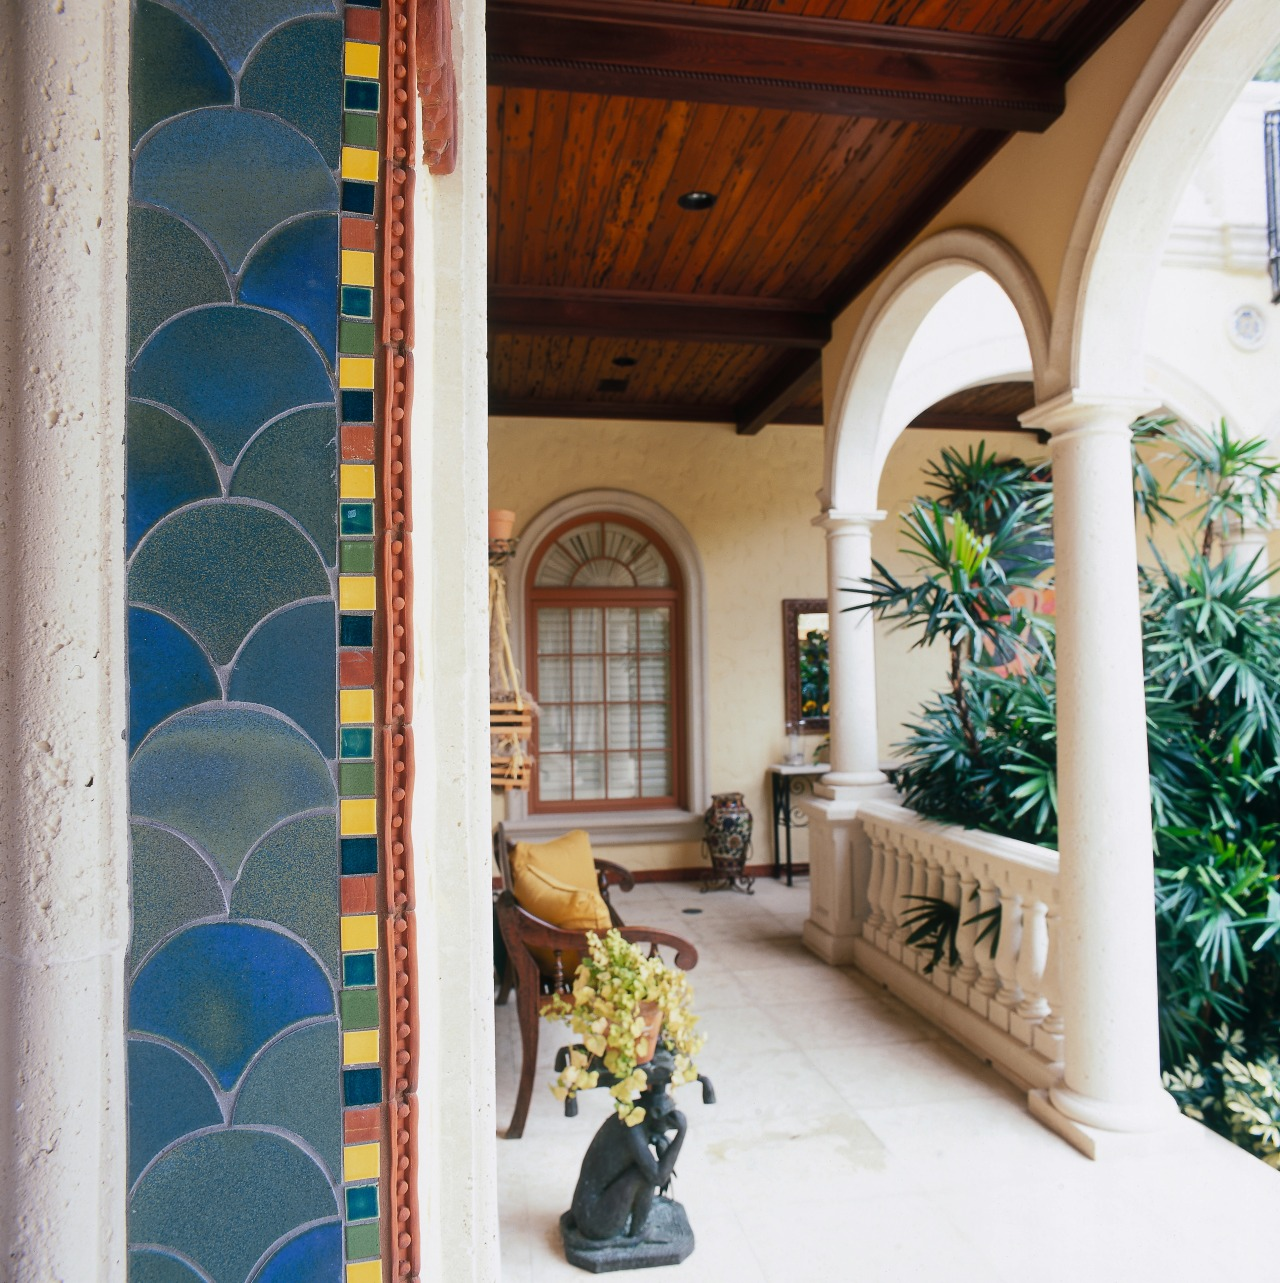 view of the brightly coloured tile edging adds door, estate, home, interior design, real estate, structure, wall, window